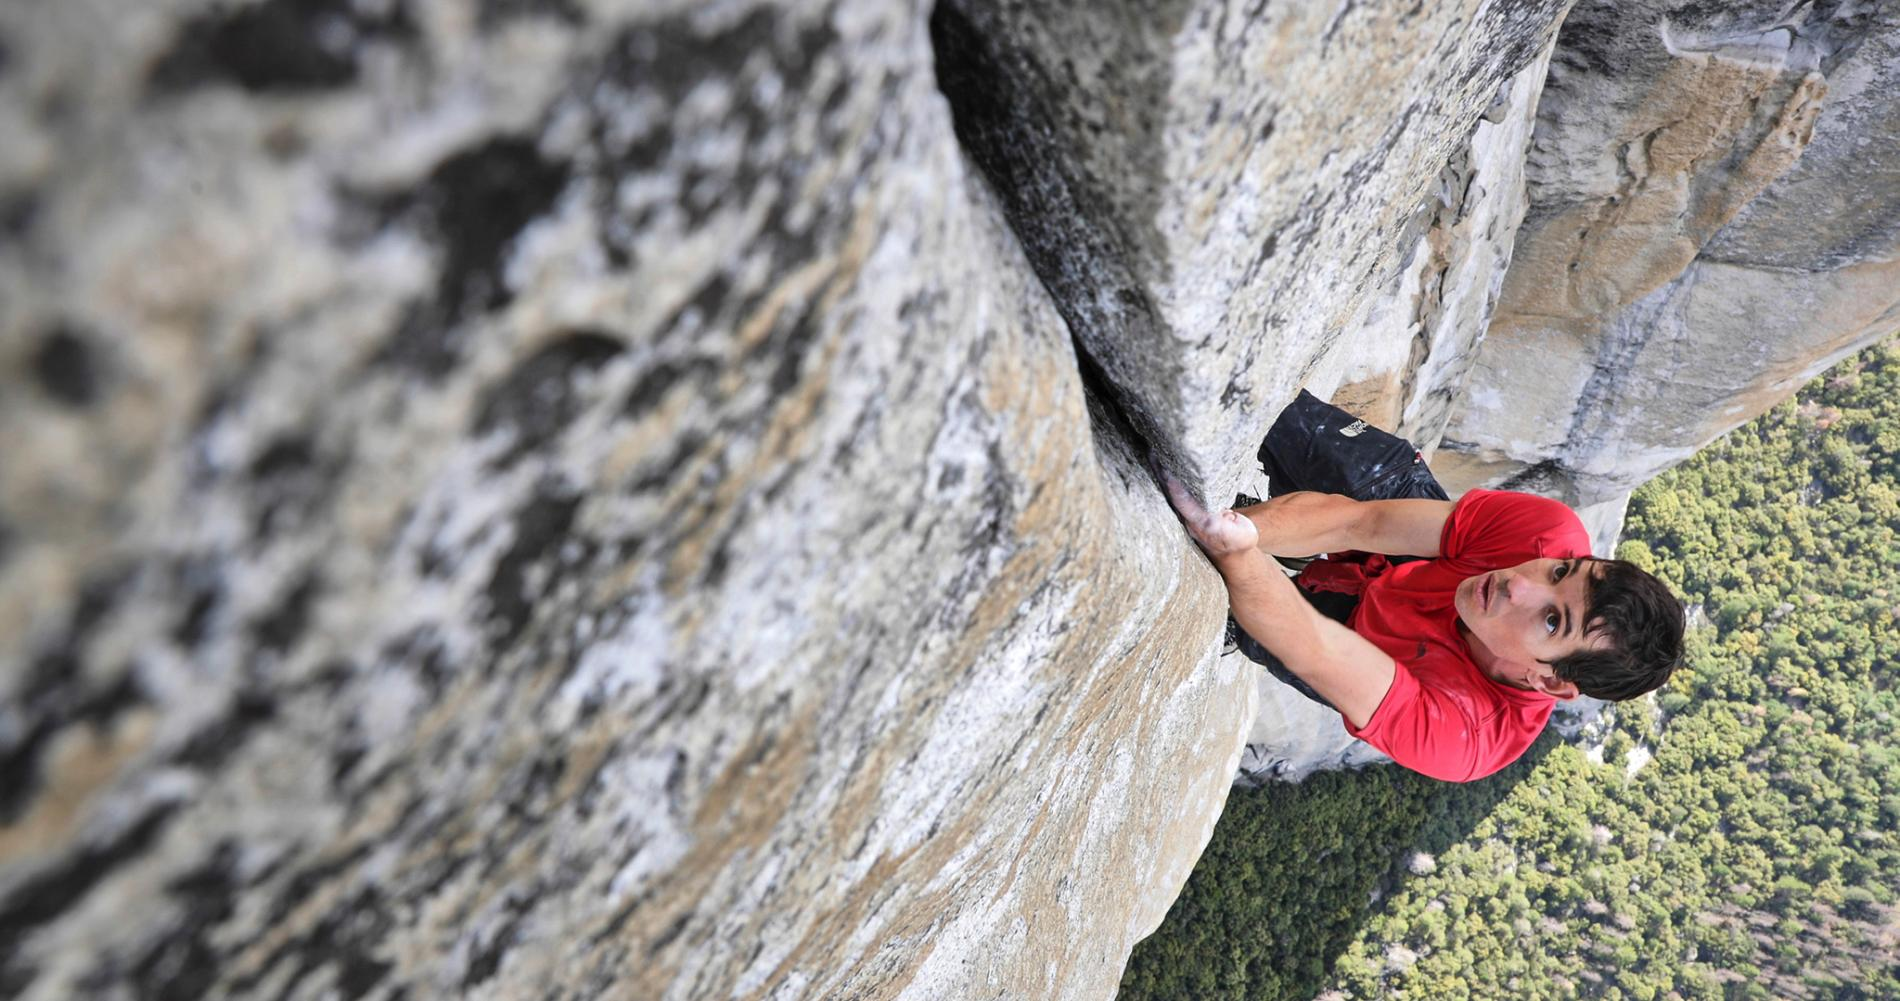 15. Alex Honnold - Professional climber, Founder of the Honnold Foundation, world record holder.